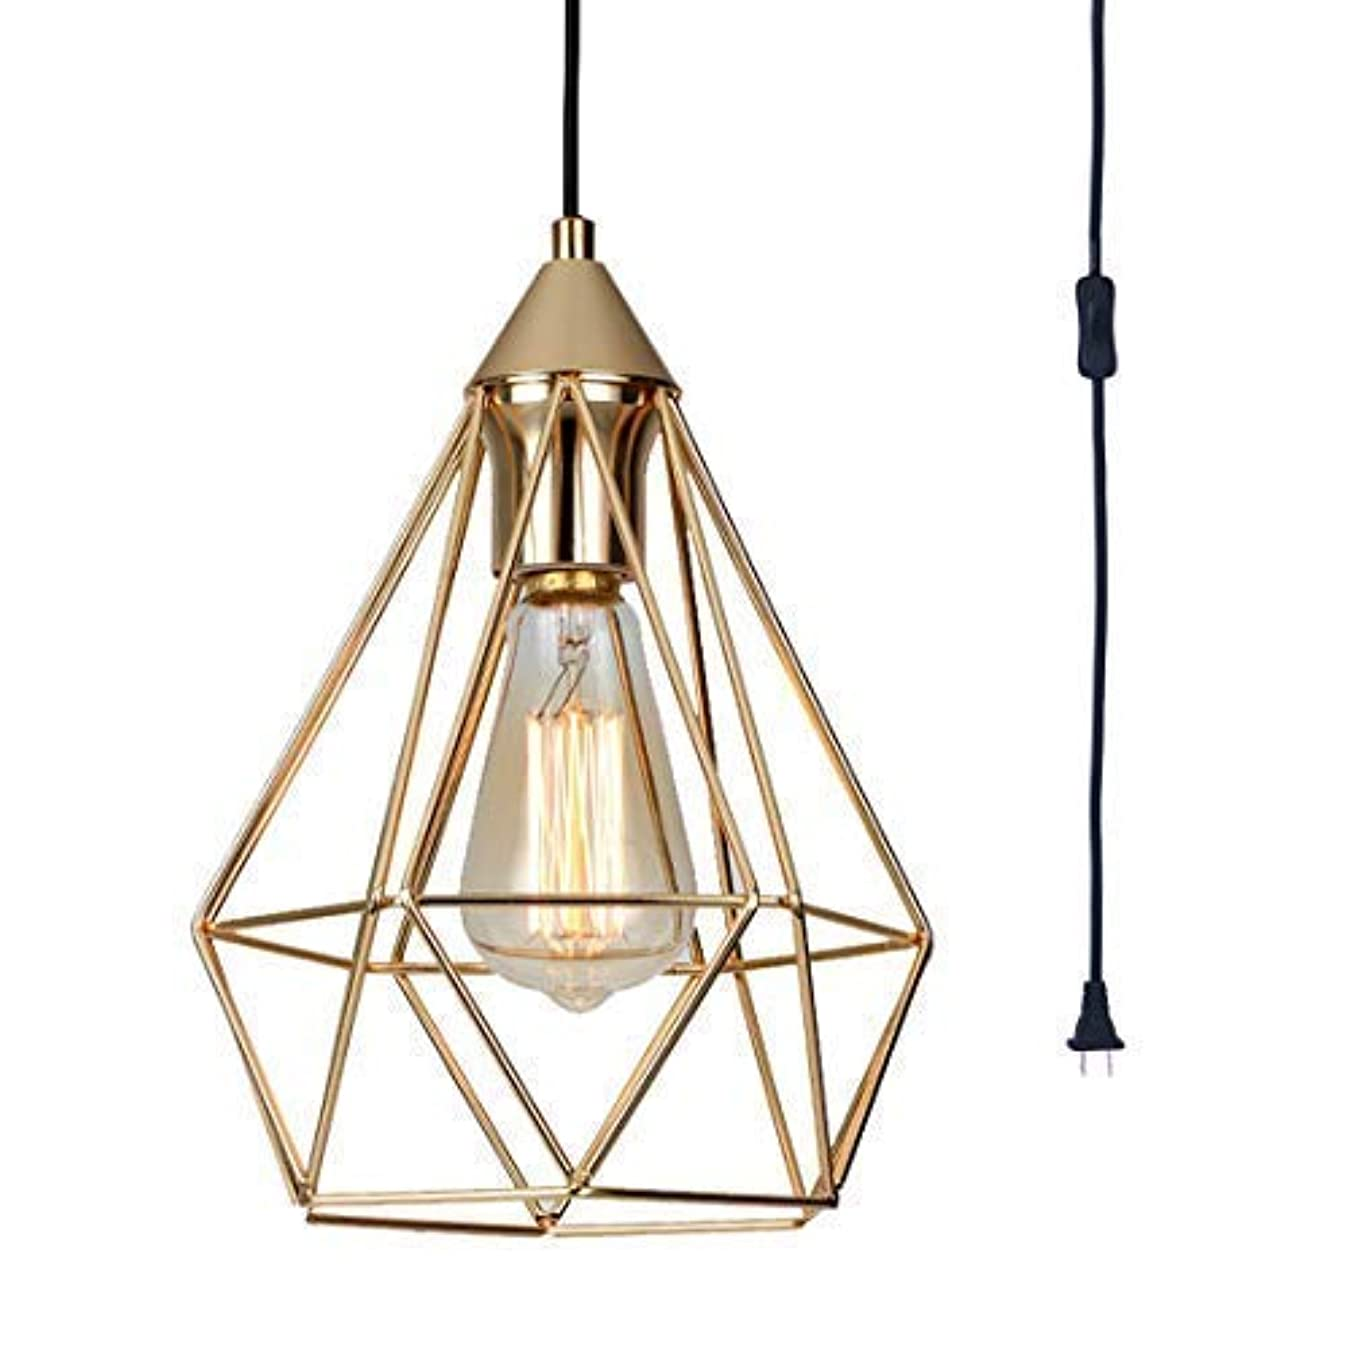 SEEBLEN Champagne Gold Hanging Light Modern Plug in Pendant Light with 15 Ft Cord Light Fixture in-Line On/Off Switch(9.8x7.9x7.9 inches)